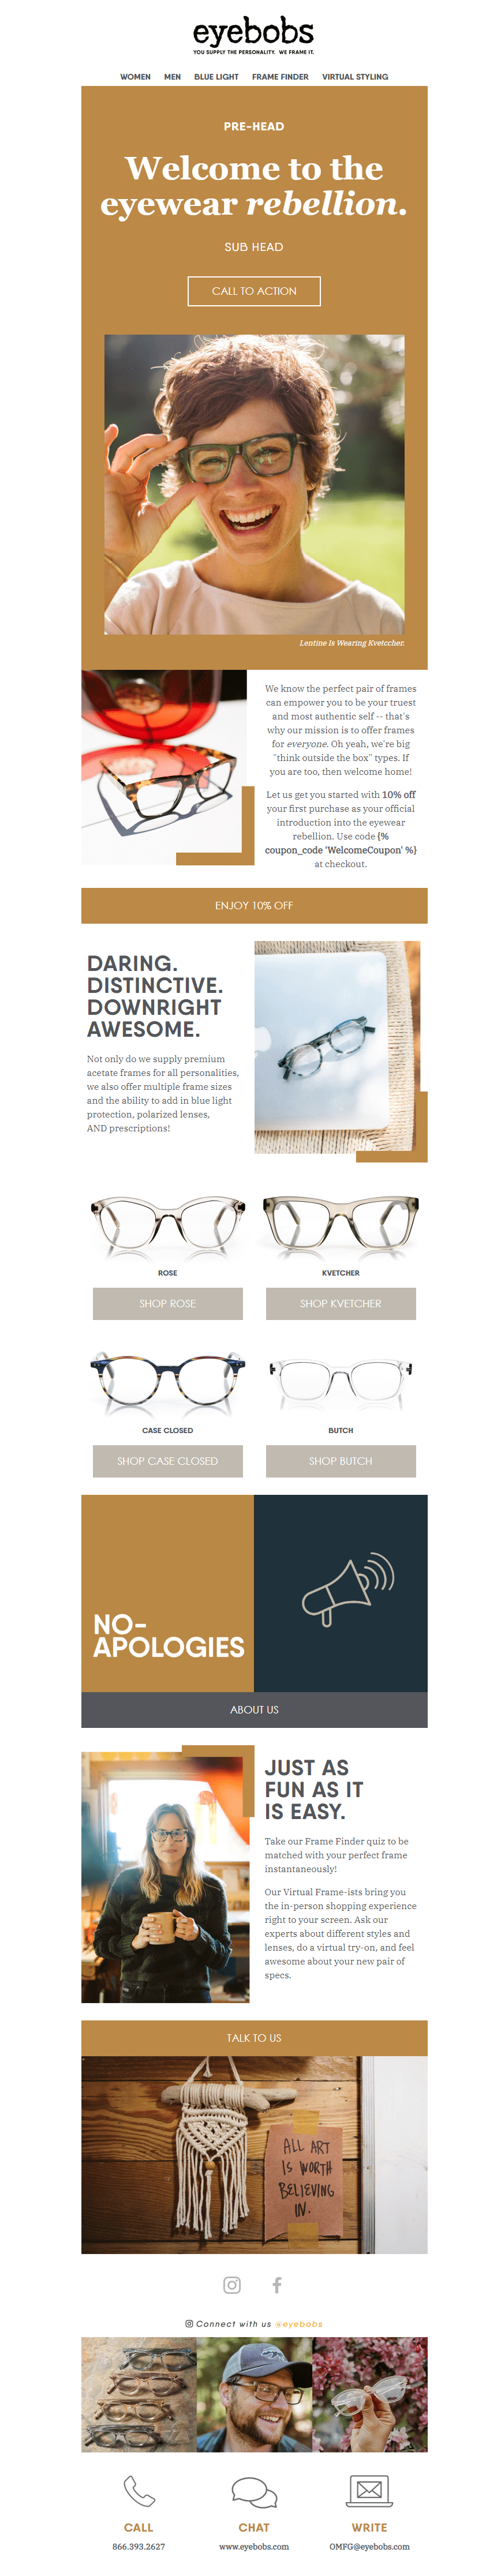 eyebobs Responsive Email Template for Klaviyo